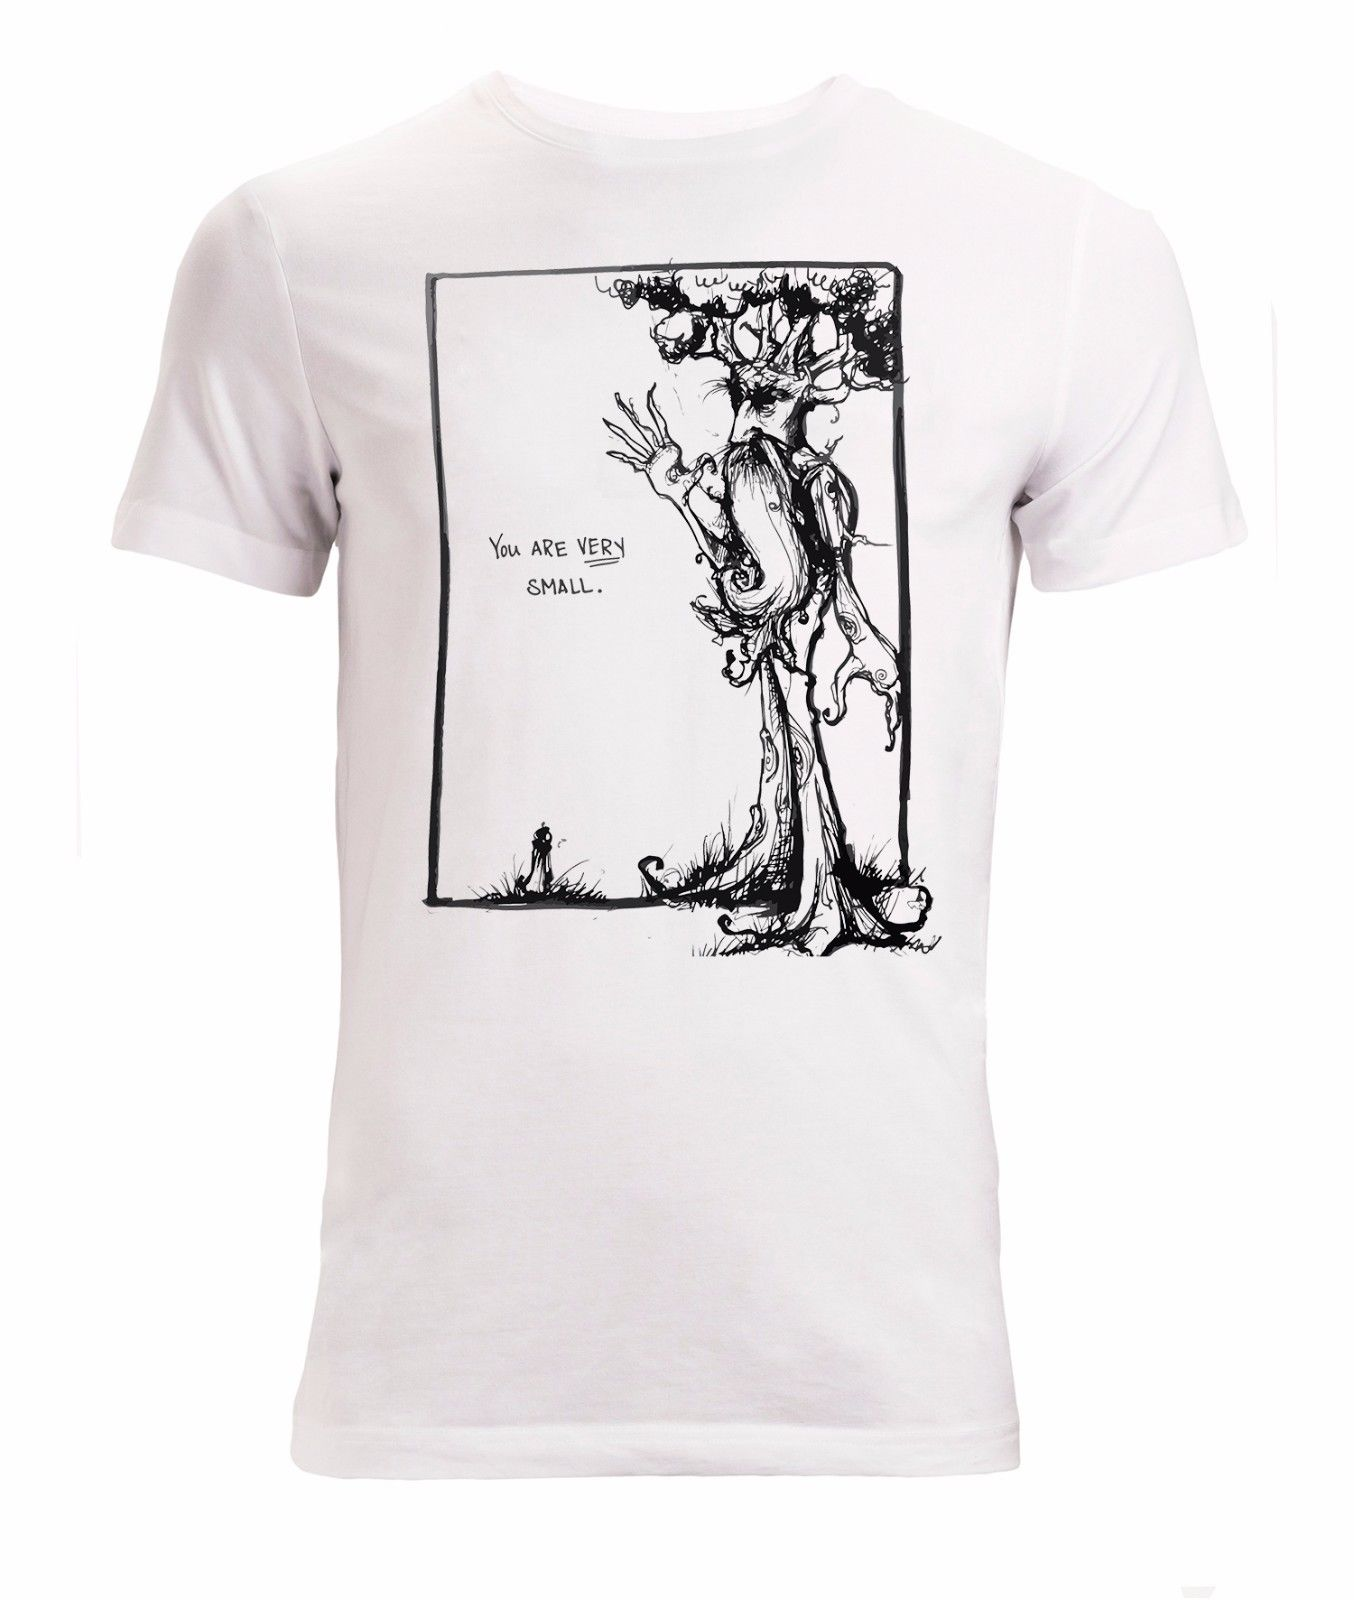 Lord of the Rings a hobbit and ent art funny LotR mens stylish t shirt white Summer Short Sleeves Cotton Fashion t Shirt